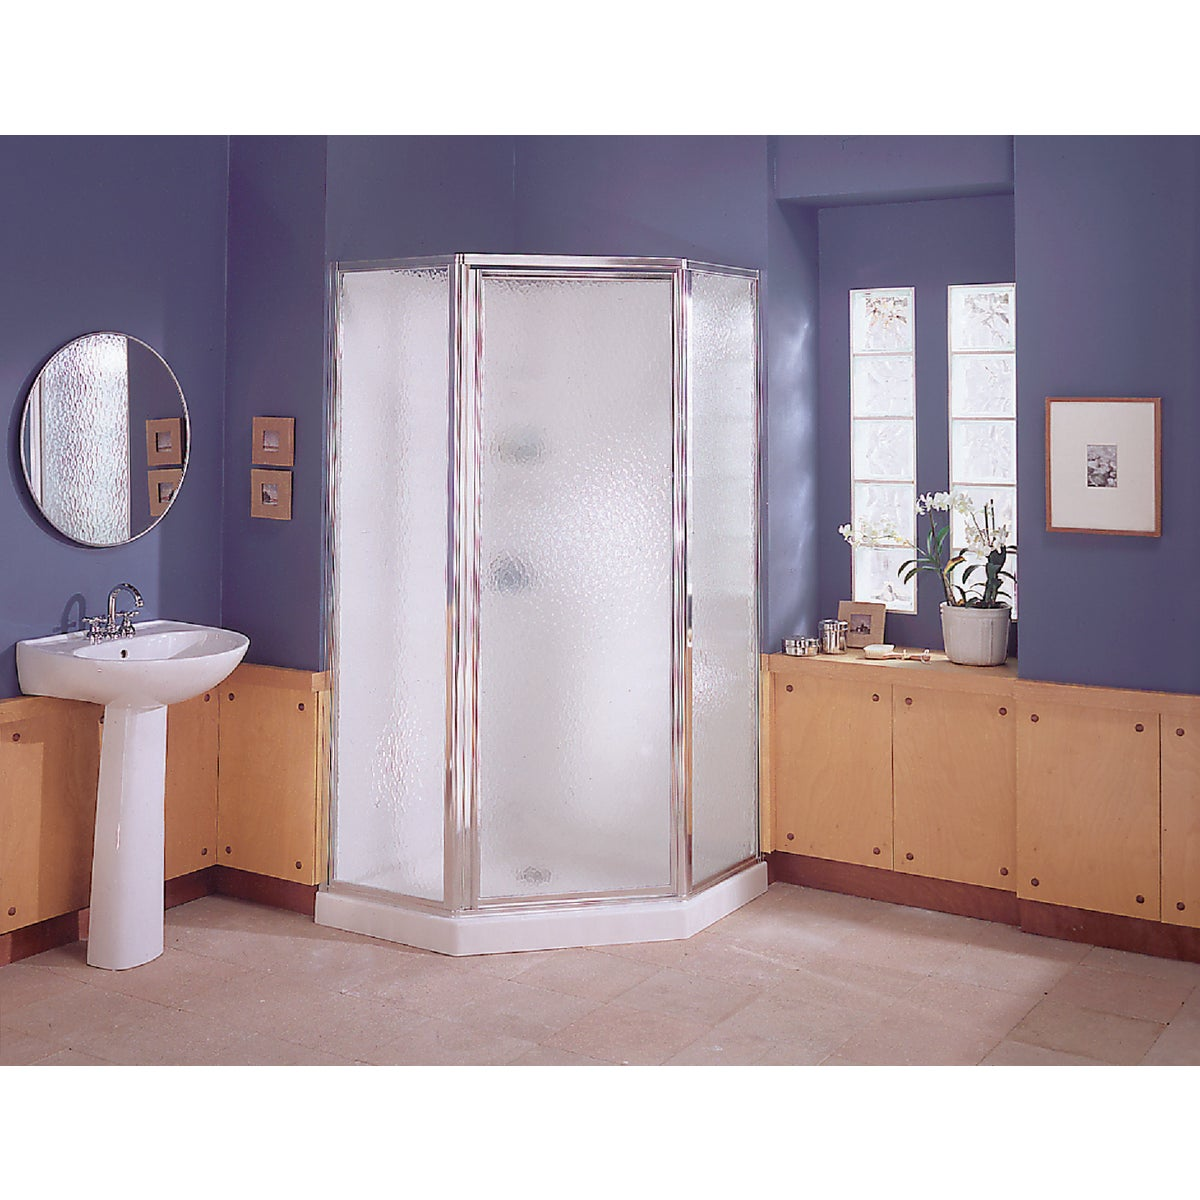 NEO-ANGLE SHOWER SYSTEM